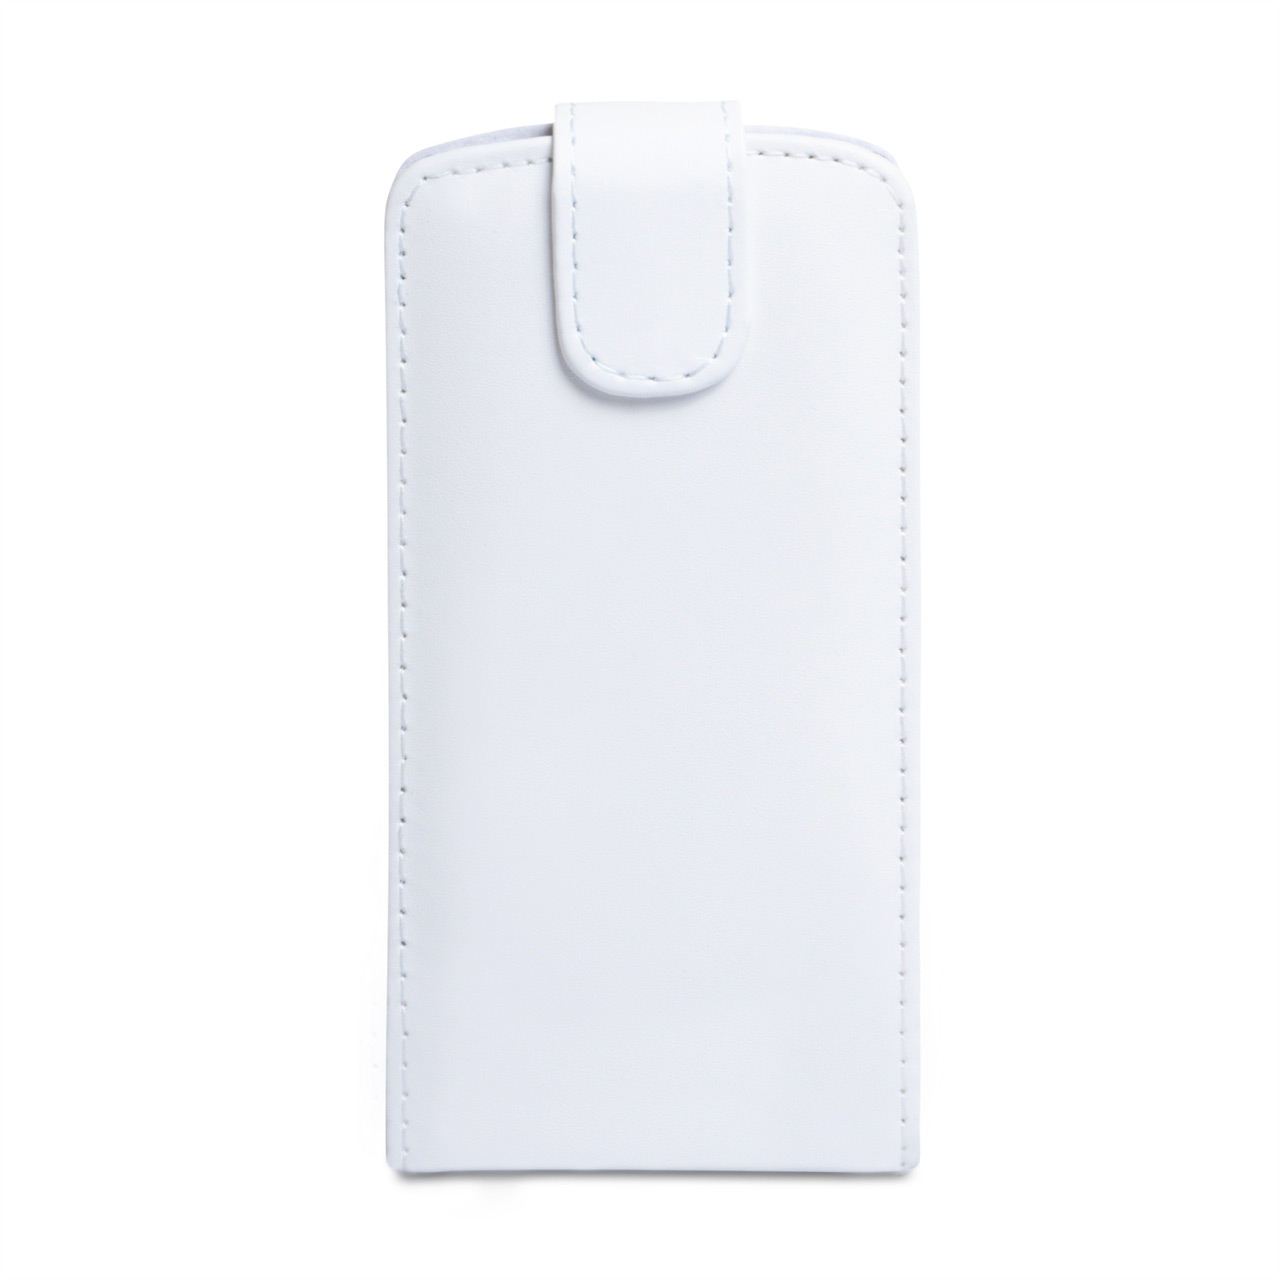 YouSave Accessories Huawei Ascend P6 Leather-Effect Flip Case - White